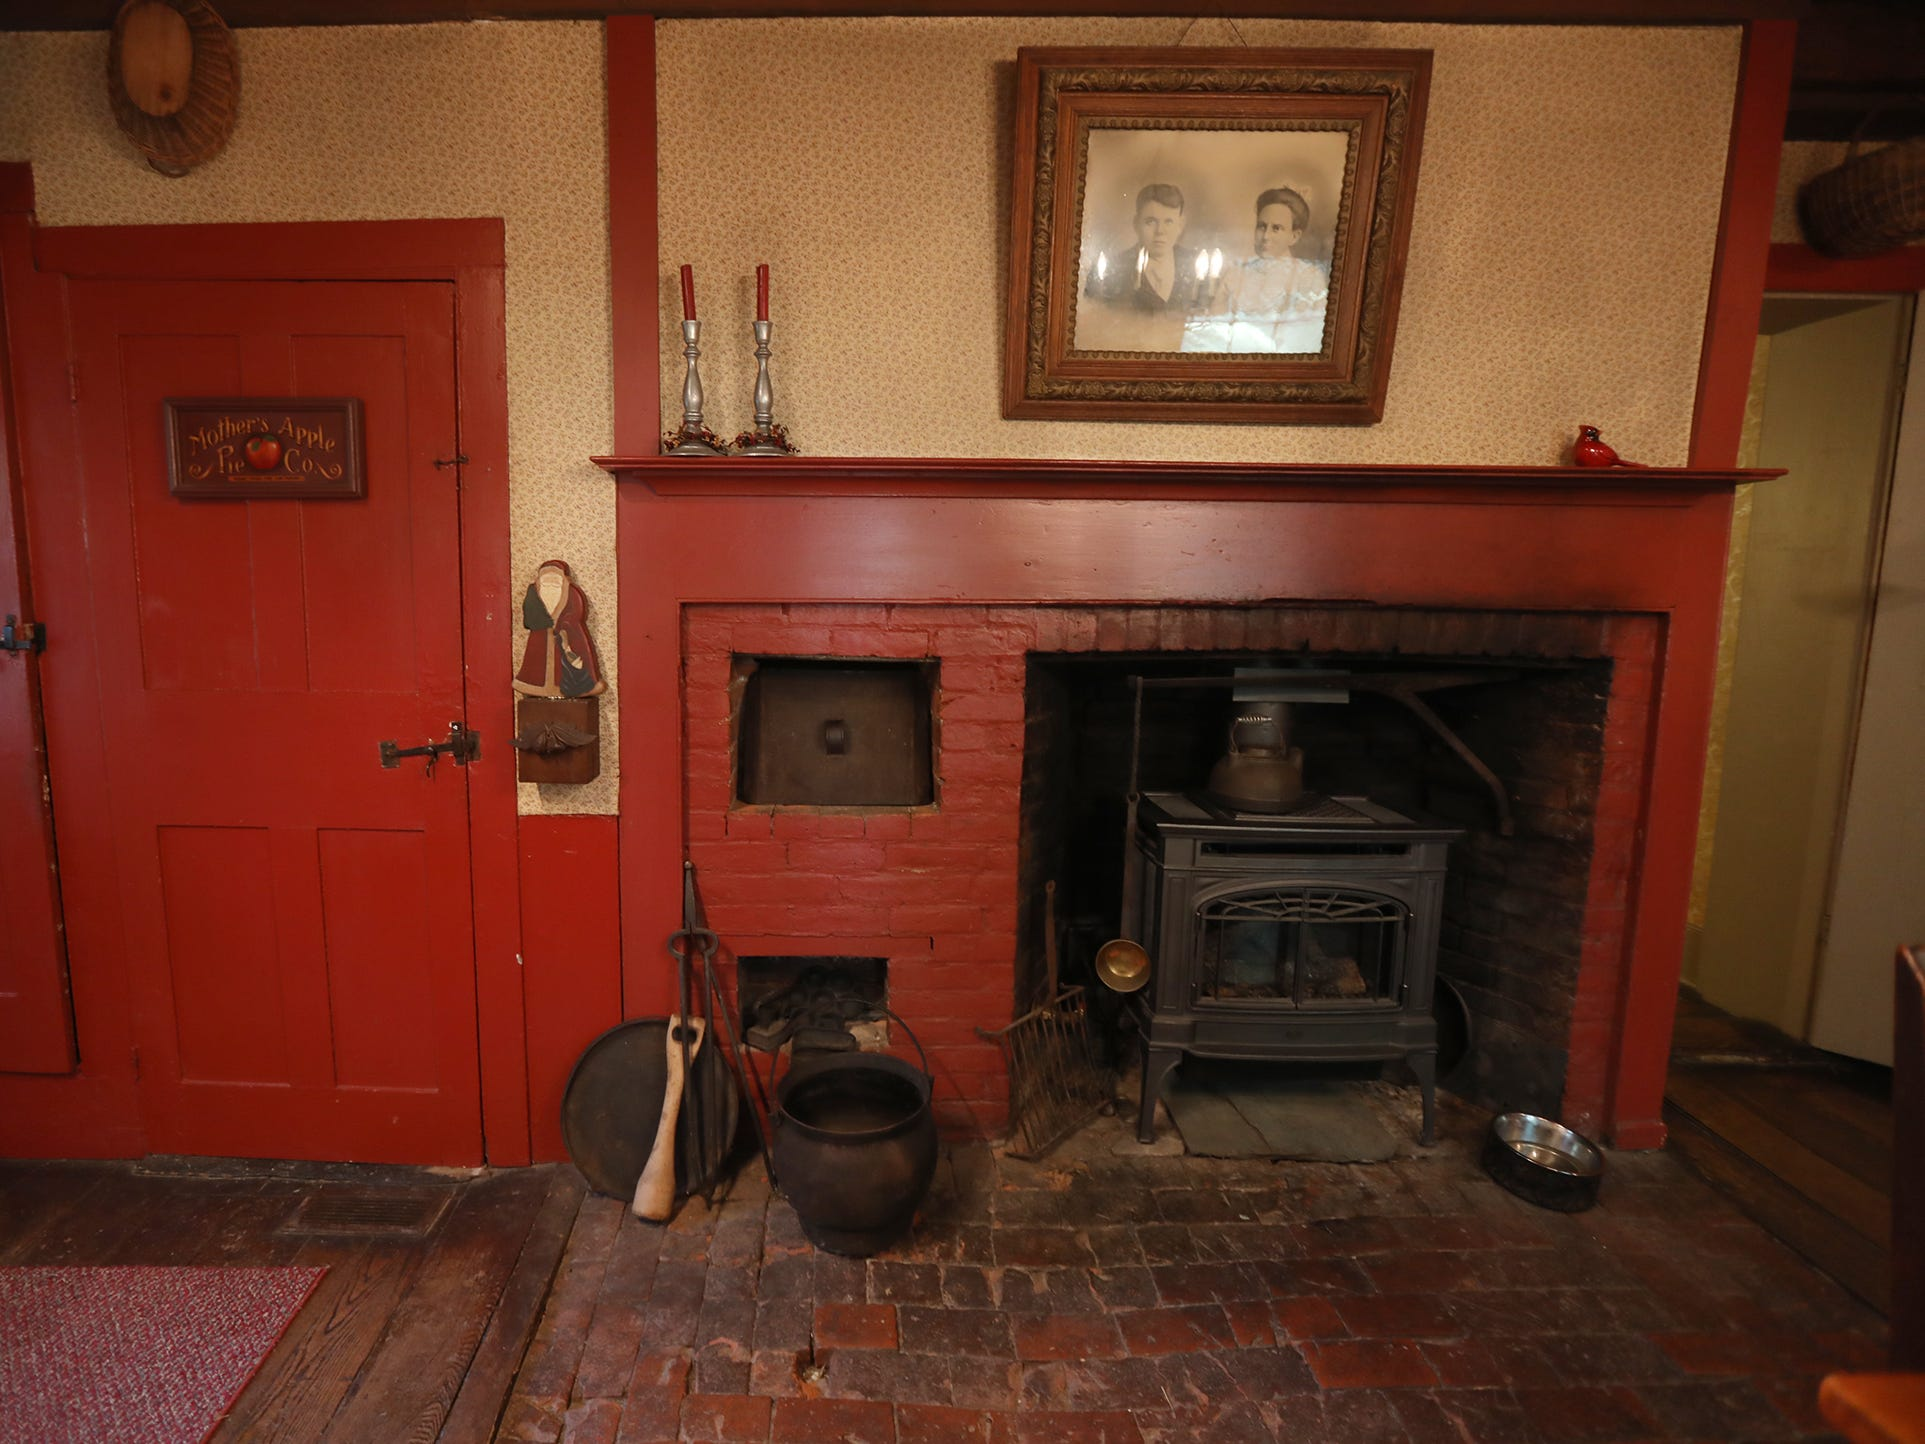 The home still has its original cooking fireplace with some of the hardware intact from early days. Above the fireplace is a picture of relatives of the Jewetts, the original owners.